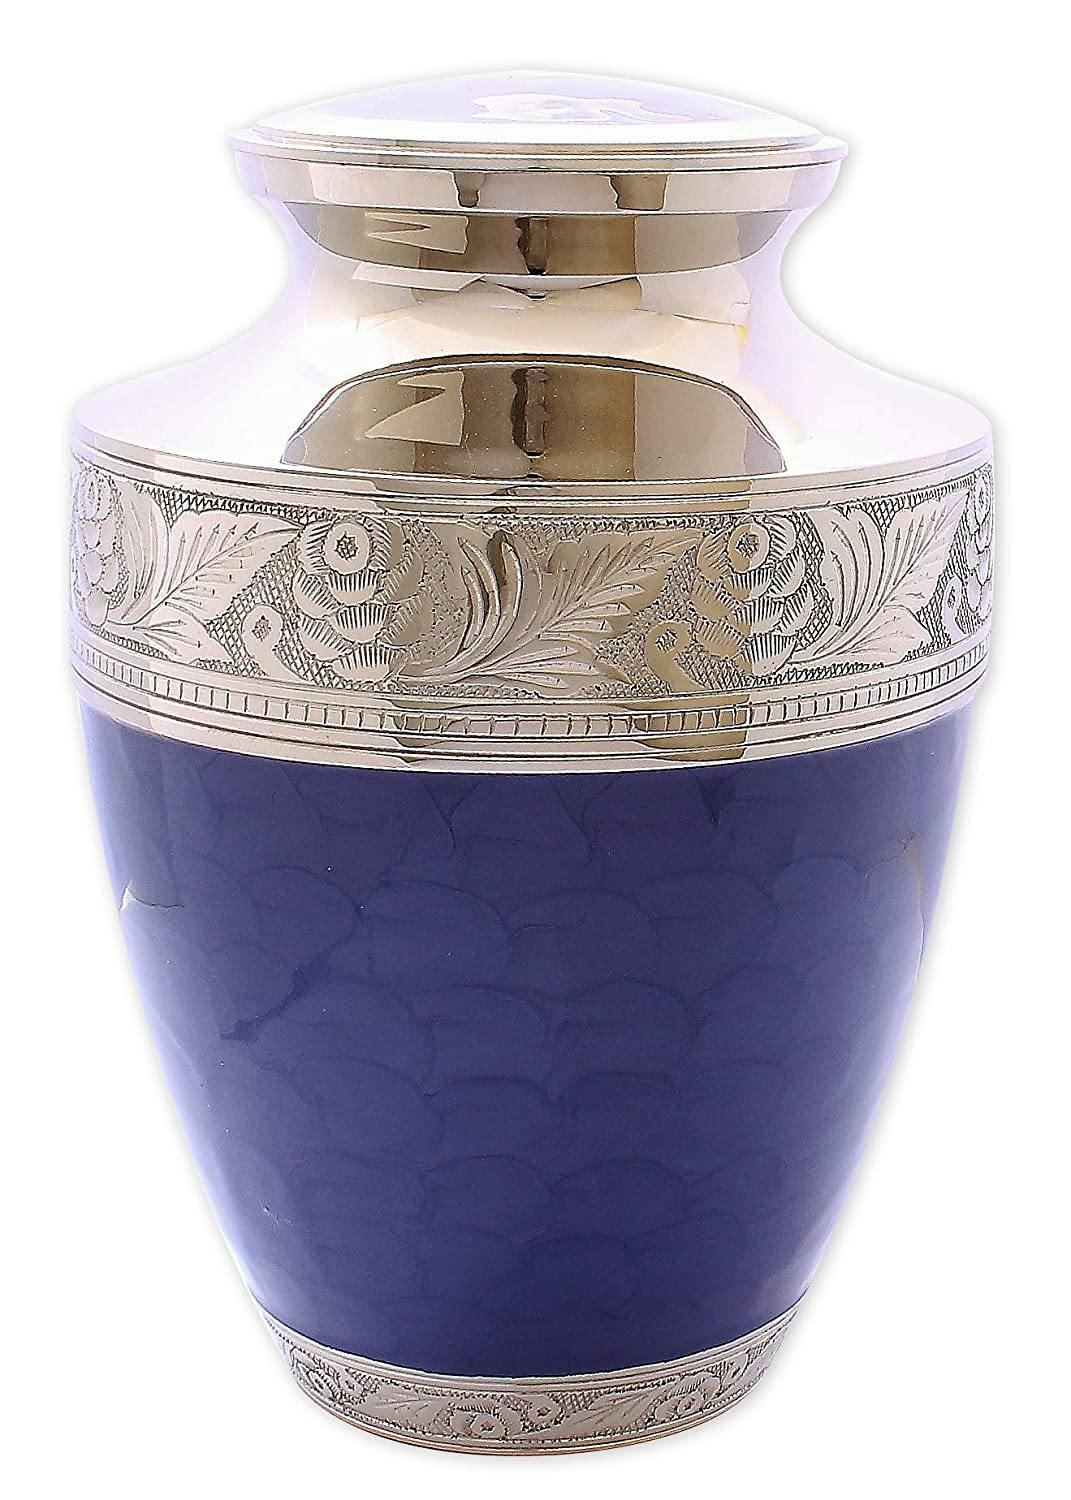 Adult Cremation Urn for Ashes Large Size Funeral Memorial Urn Indigo Blue with Silver Embossed Design UrnsWithLove